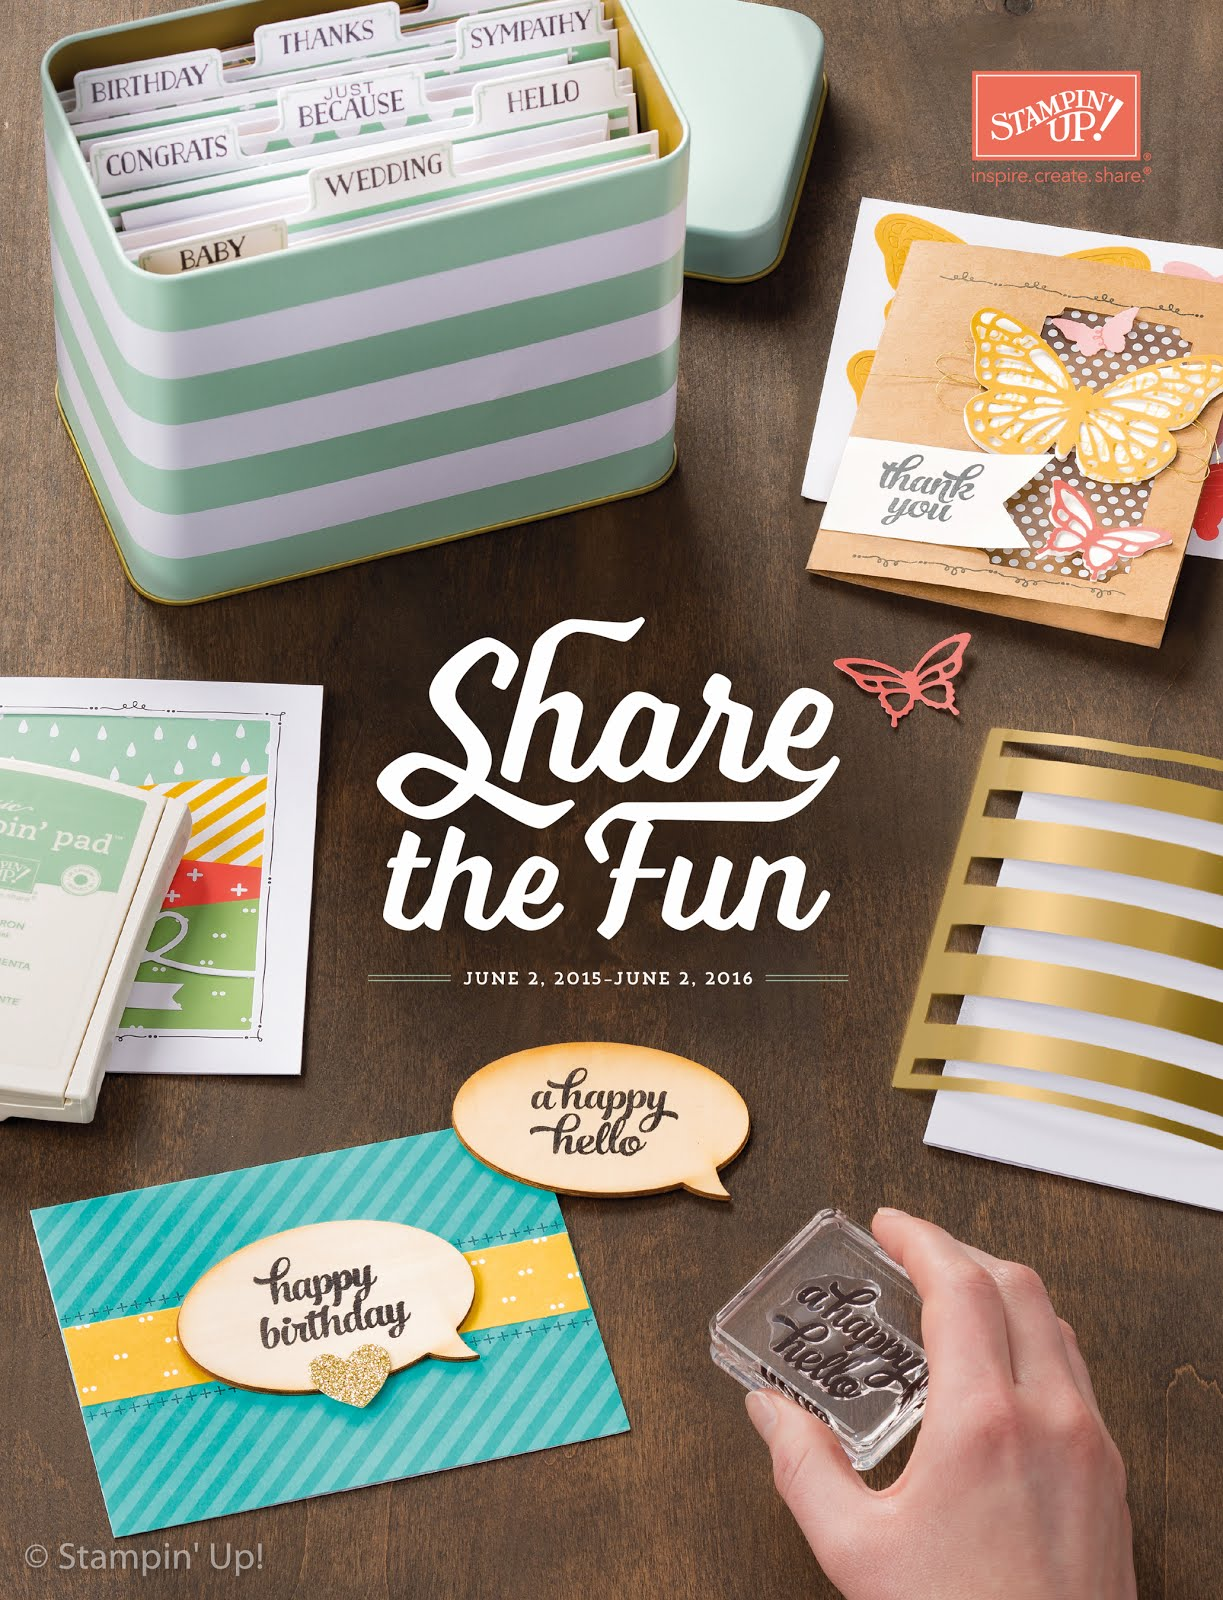 Stampin' Up! Annual Catalogue 2015-2016